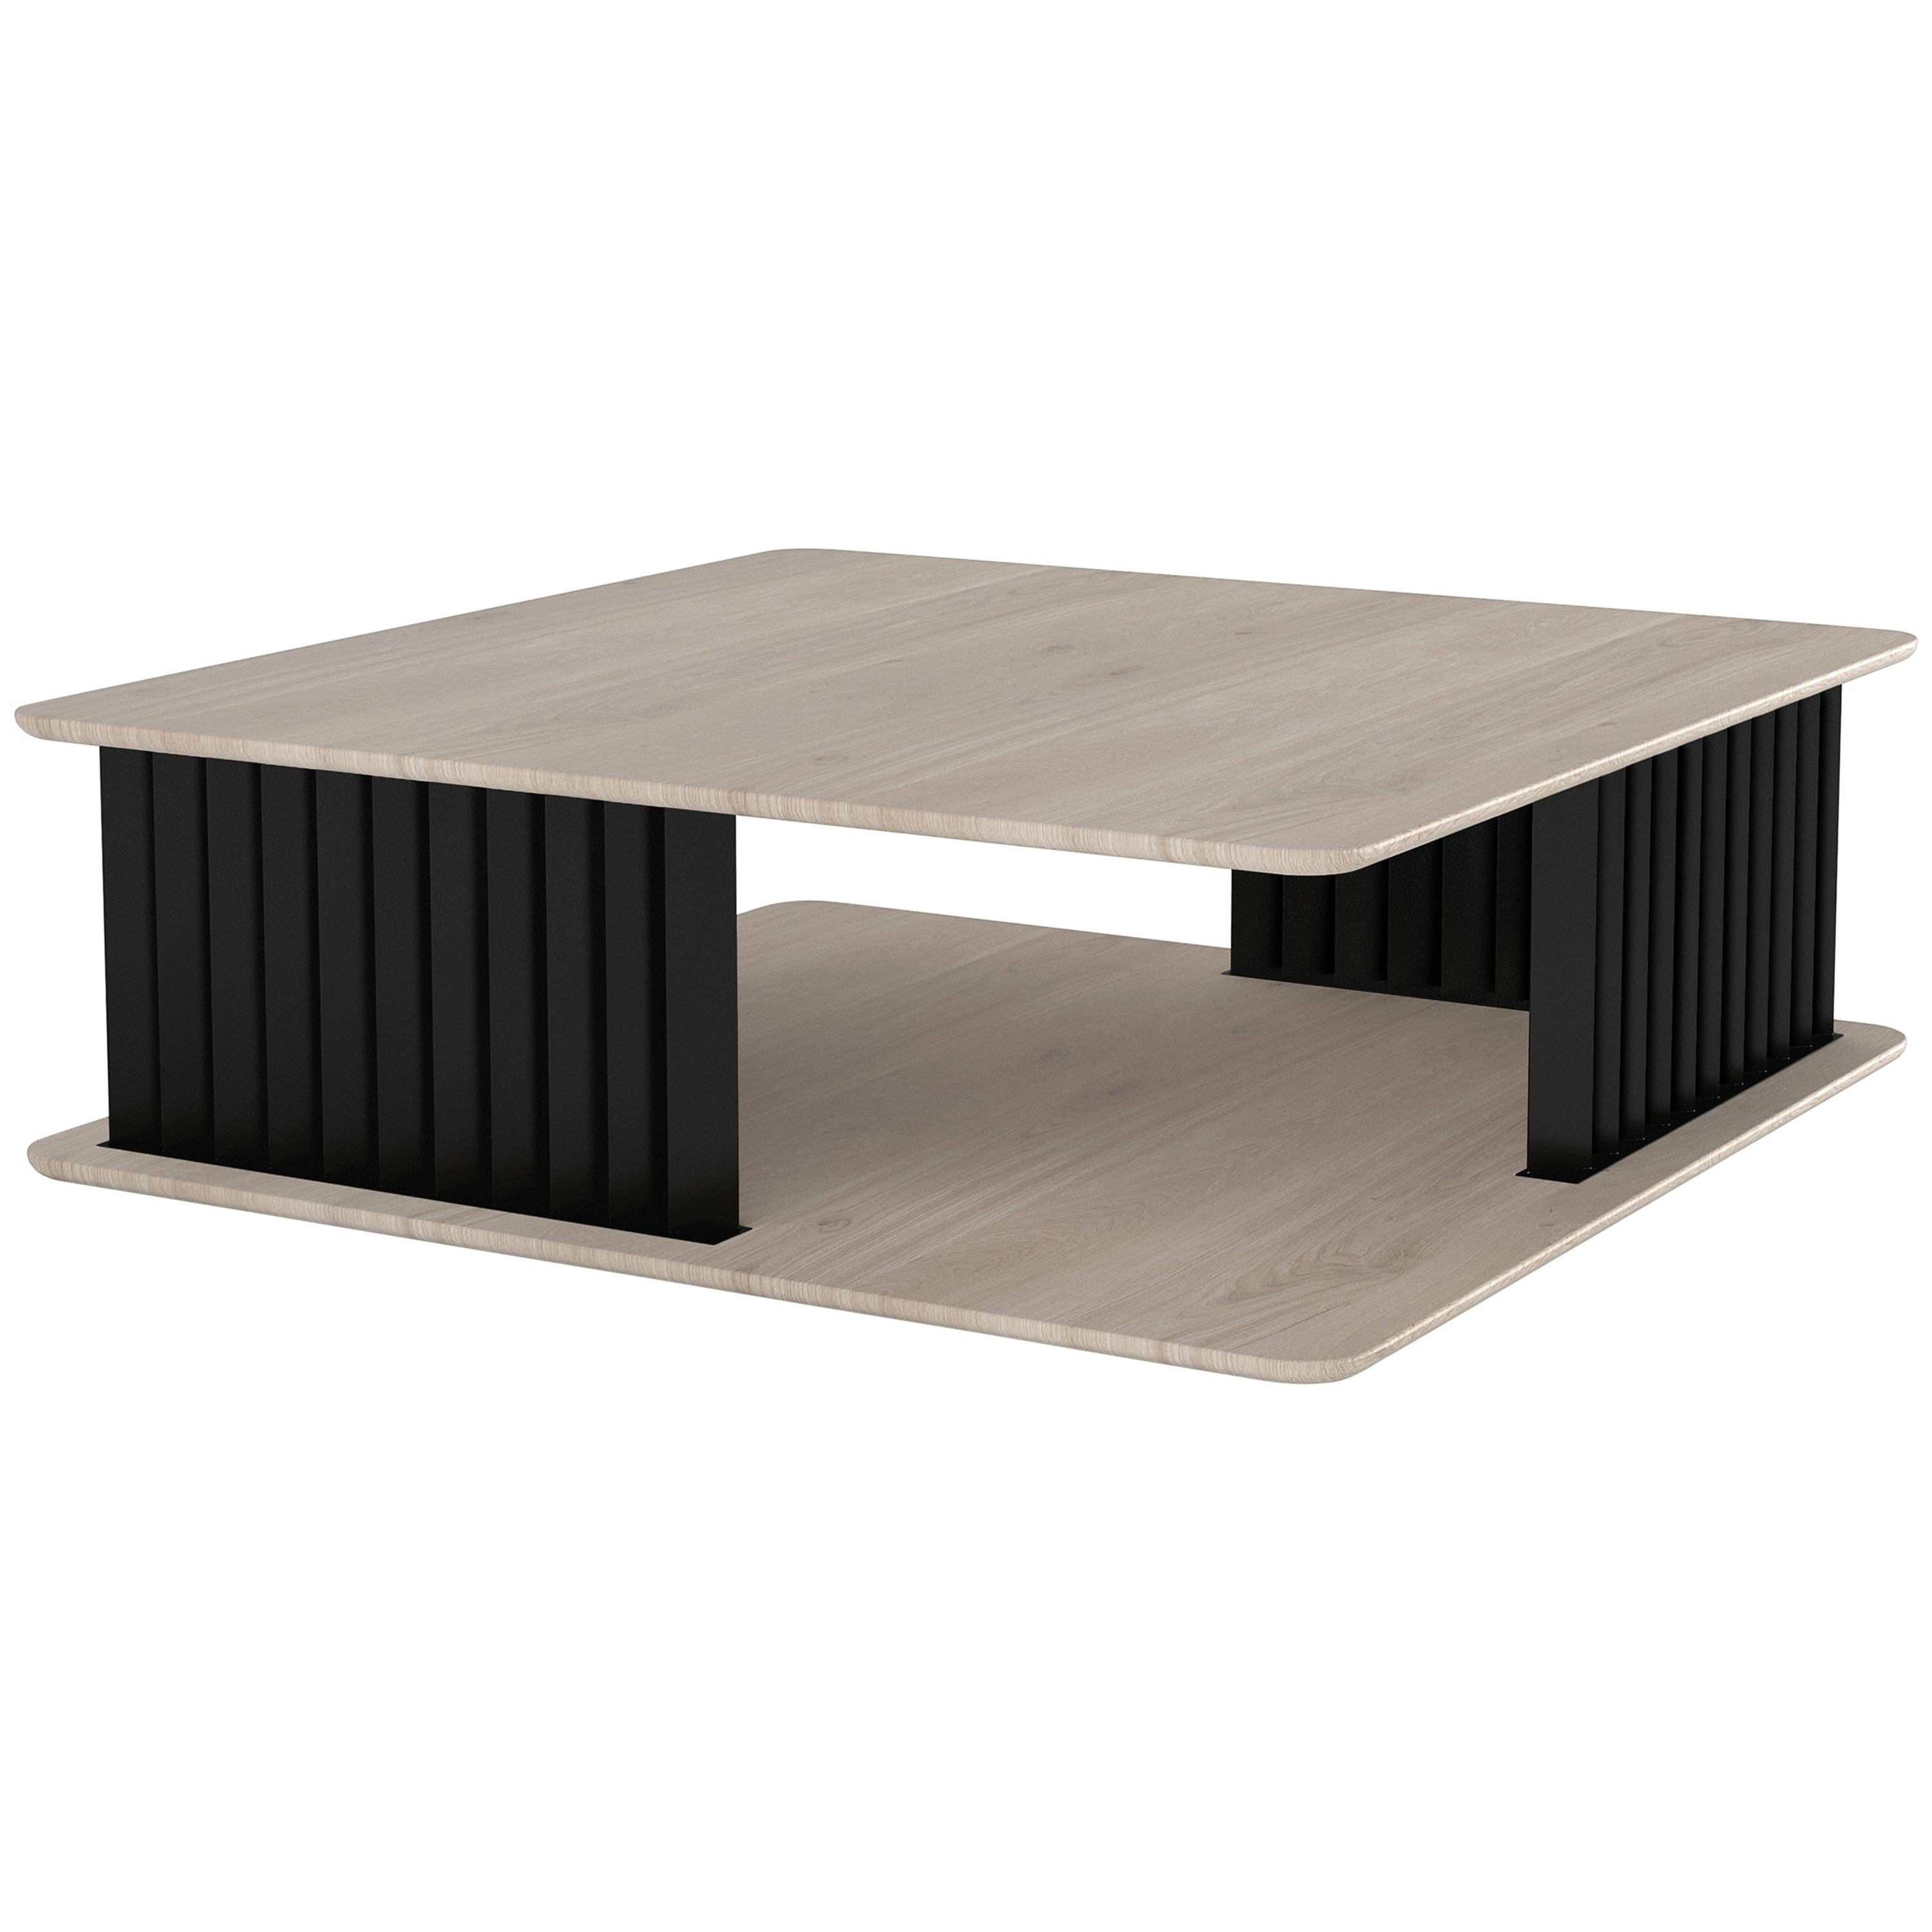 Ash Wood Coffee Table, Silvery Plateau by NONO